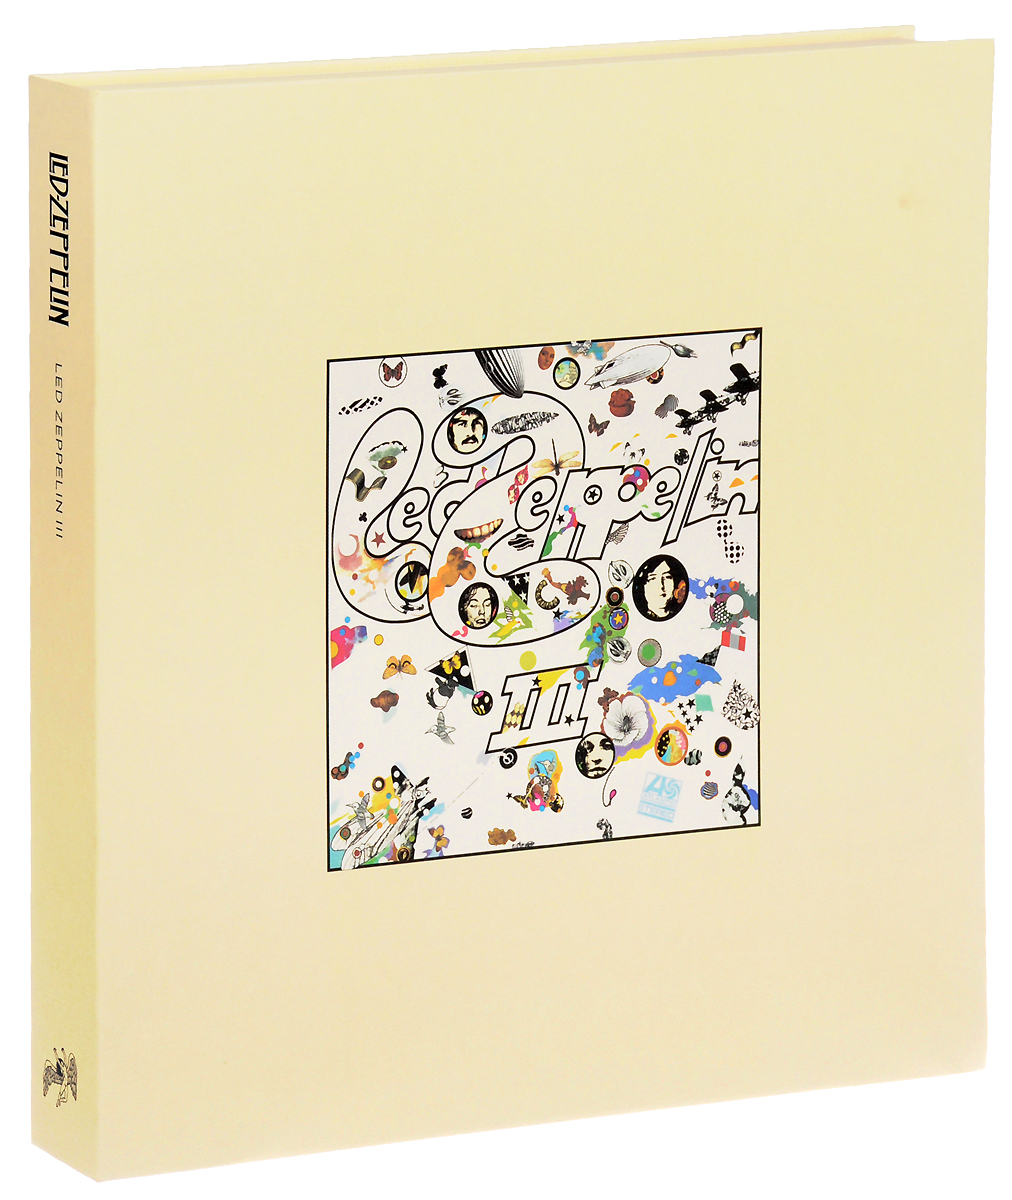 Led Zeppelin Led Zeppelin. Led Zeppelin III. Super Deluxe Edition (2 LP + 2 CD) led zeppelin led zeppelin original recording remastered 3